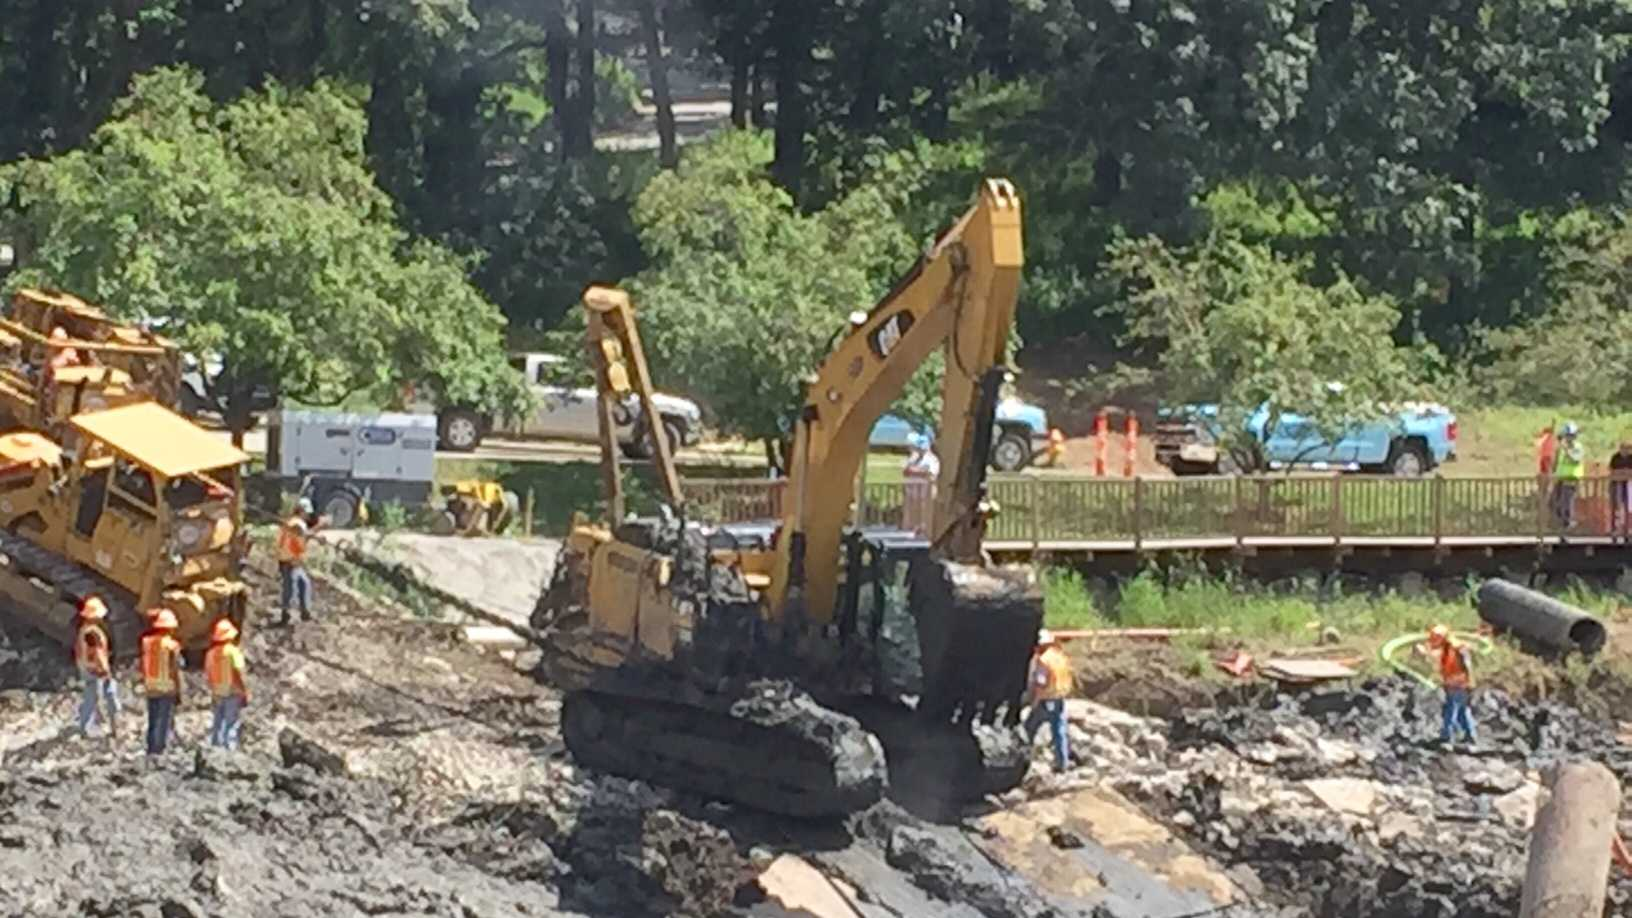 The half-million-dollar excavator was finally freed Monday afternoon after spending three days stuck in the mud.